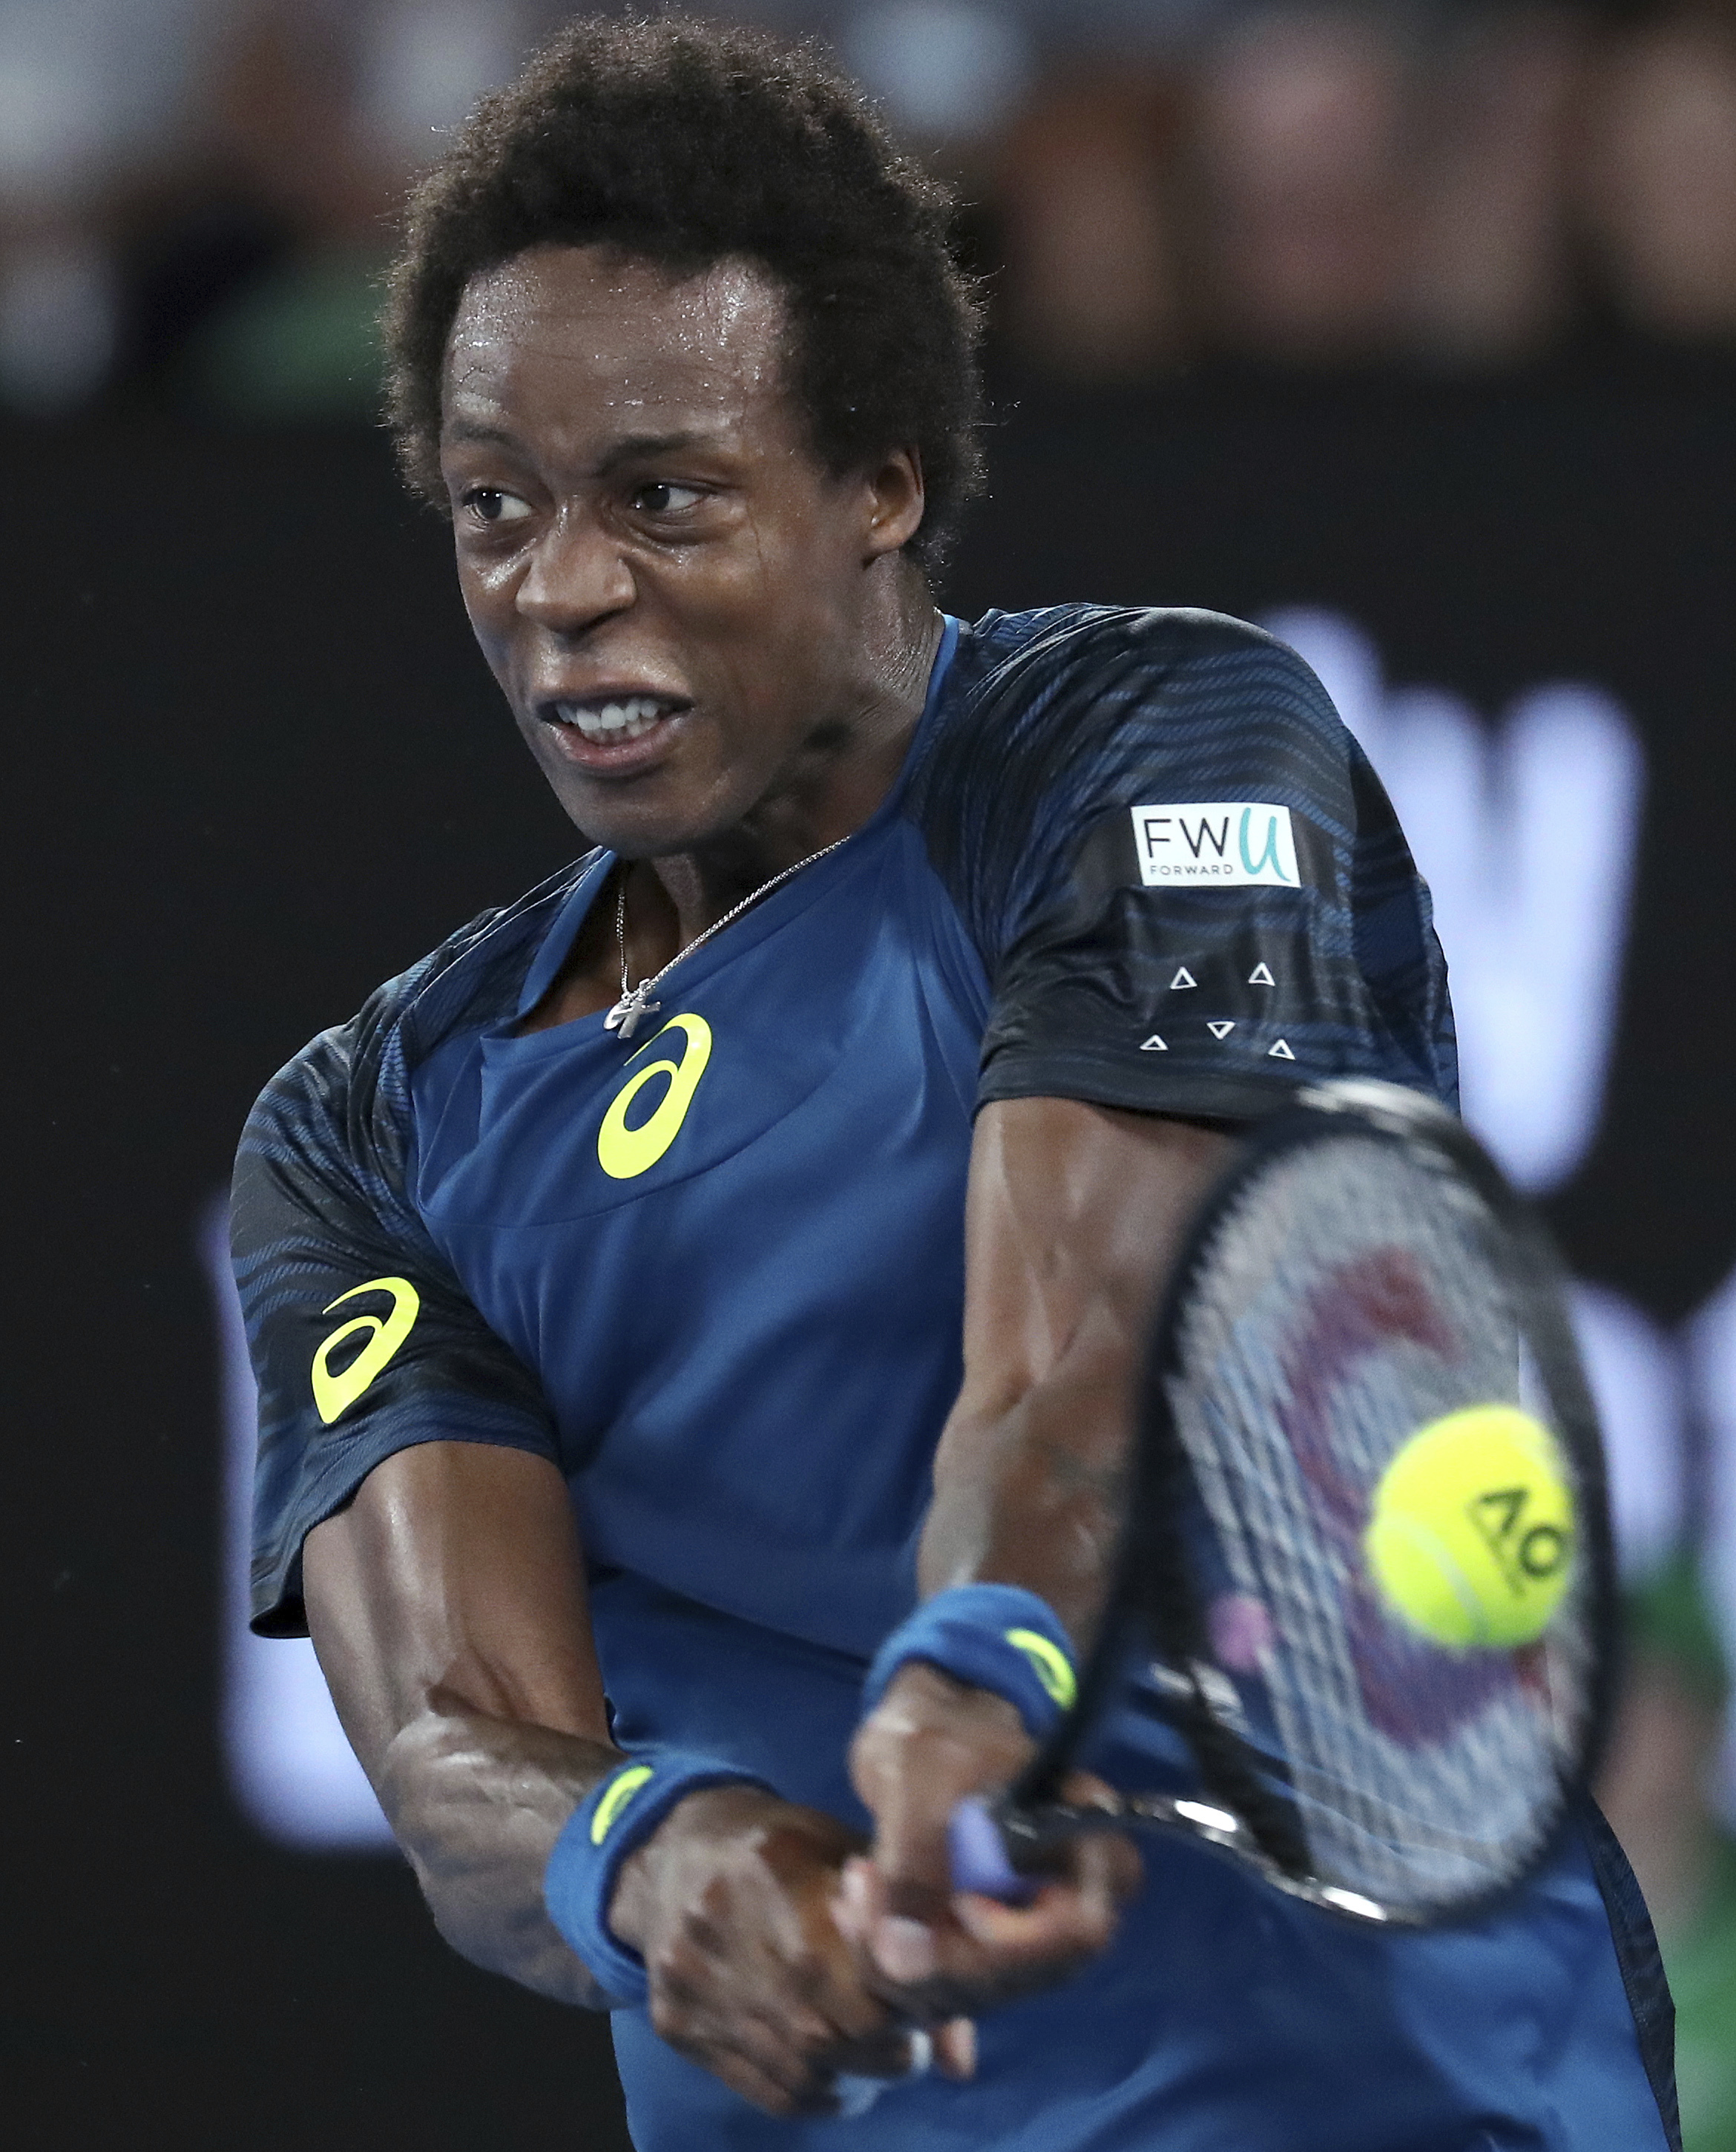 France's Gael Monfils plays a backhand to Spain's Rafael Nadal during their fourth round match at the Australian Open tennis championships in Melbourne, Australia, Monday, Jan. 23, 2017. (AP Photo/Aaron Favila)